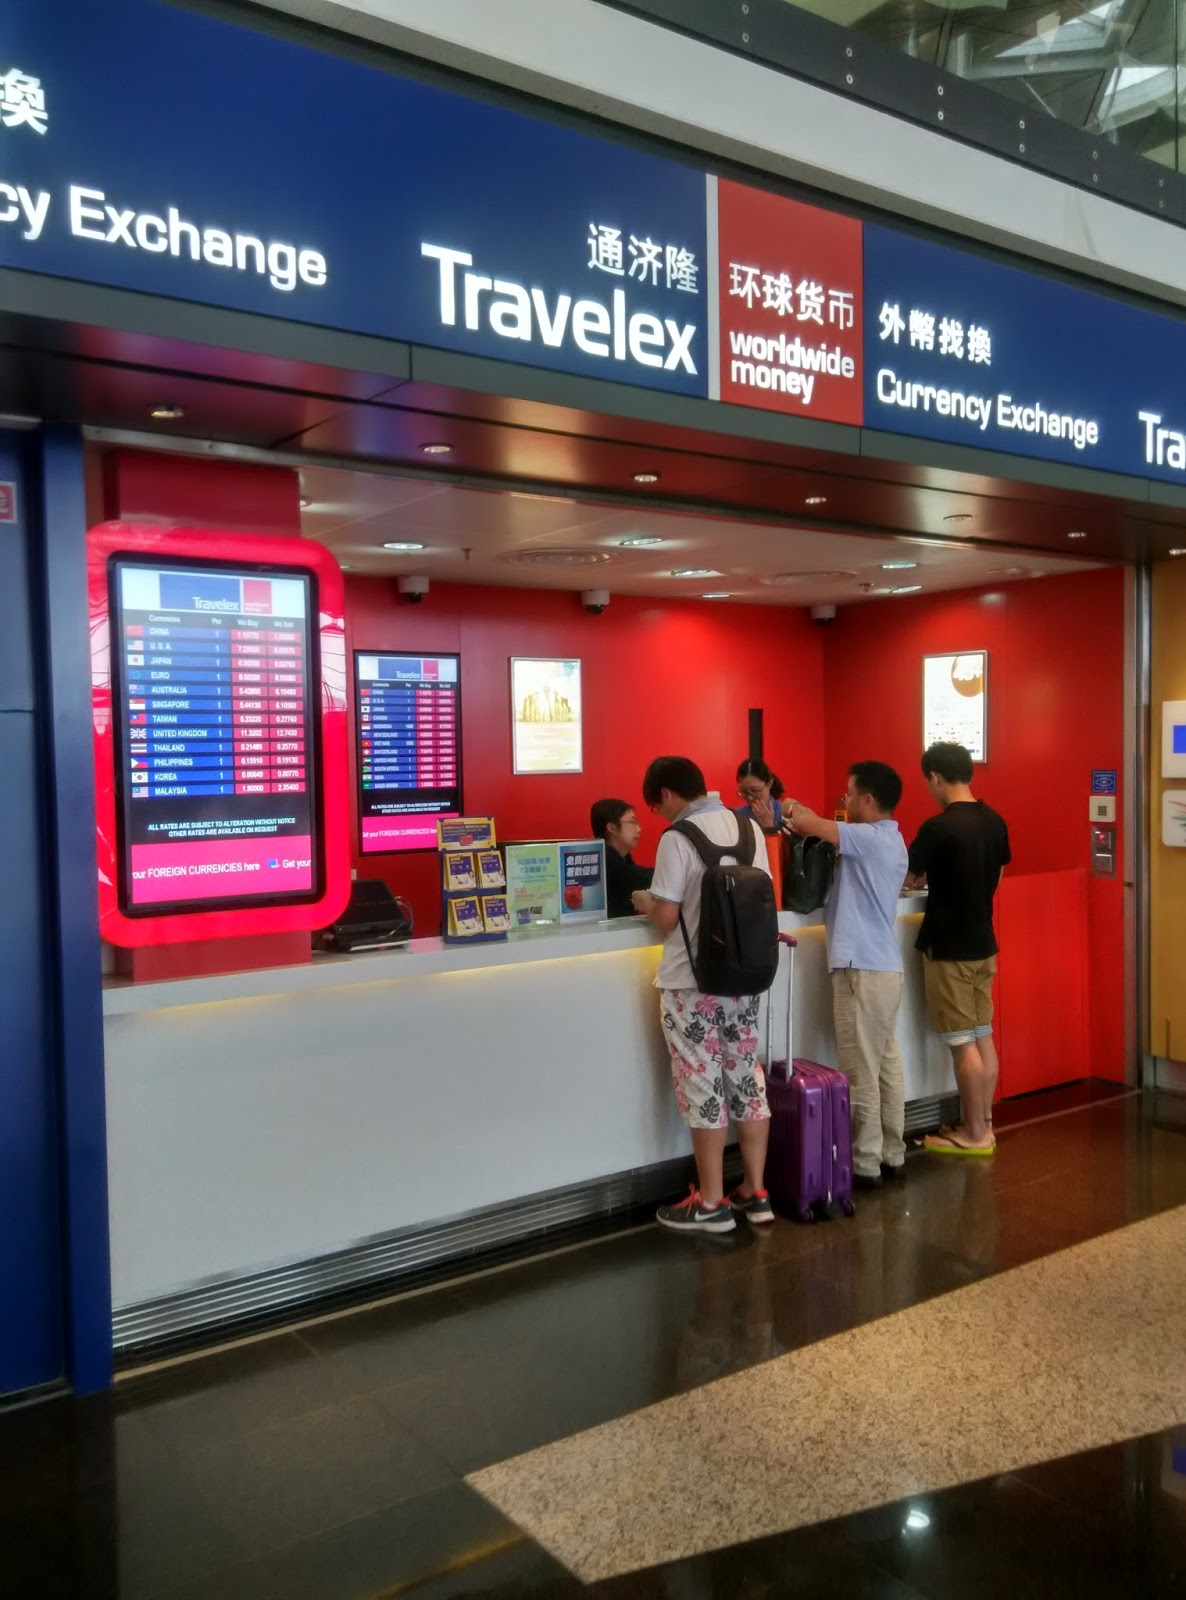 Currency Exchange And Useful Phrases